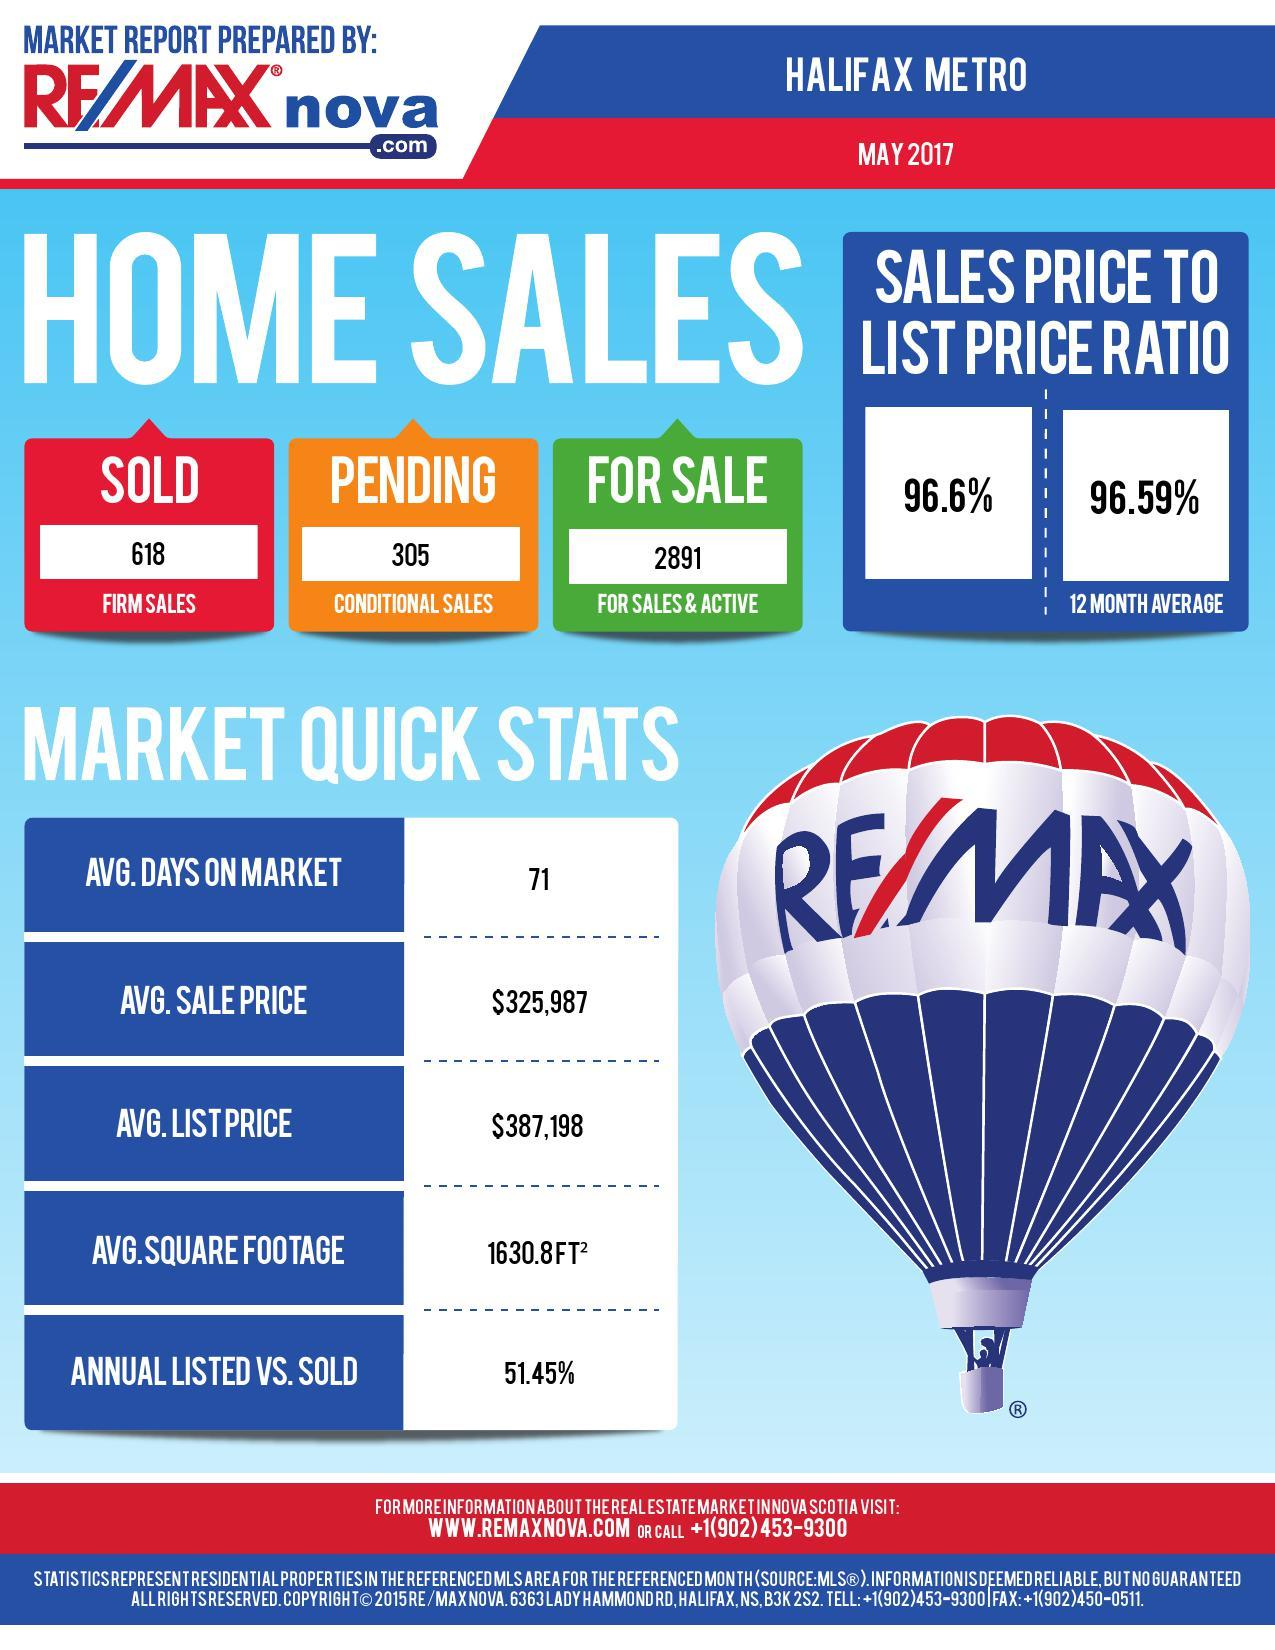 Halifax Regional Municipality 's Real Estate Market | RE/MAX nova | MLS® listings